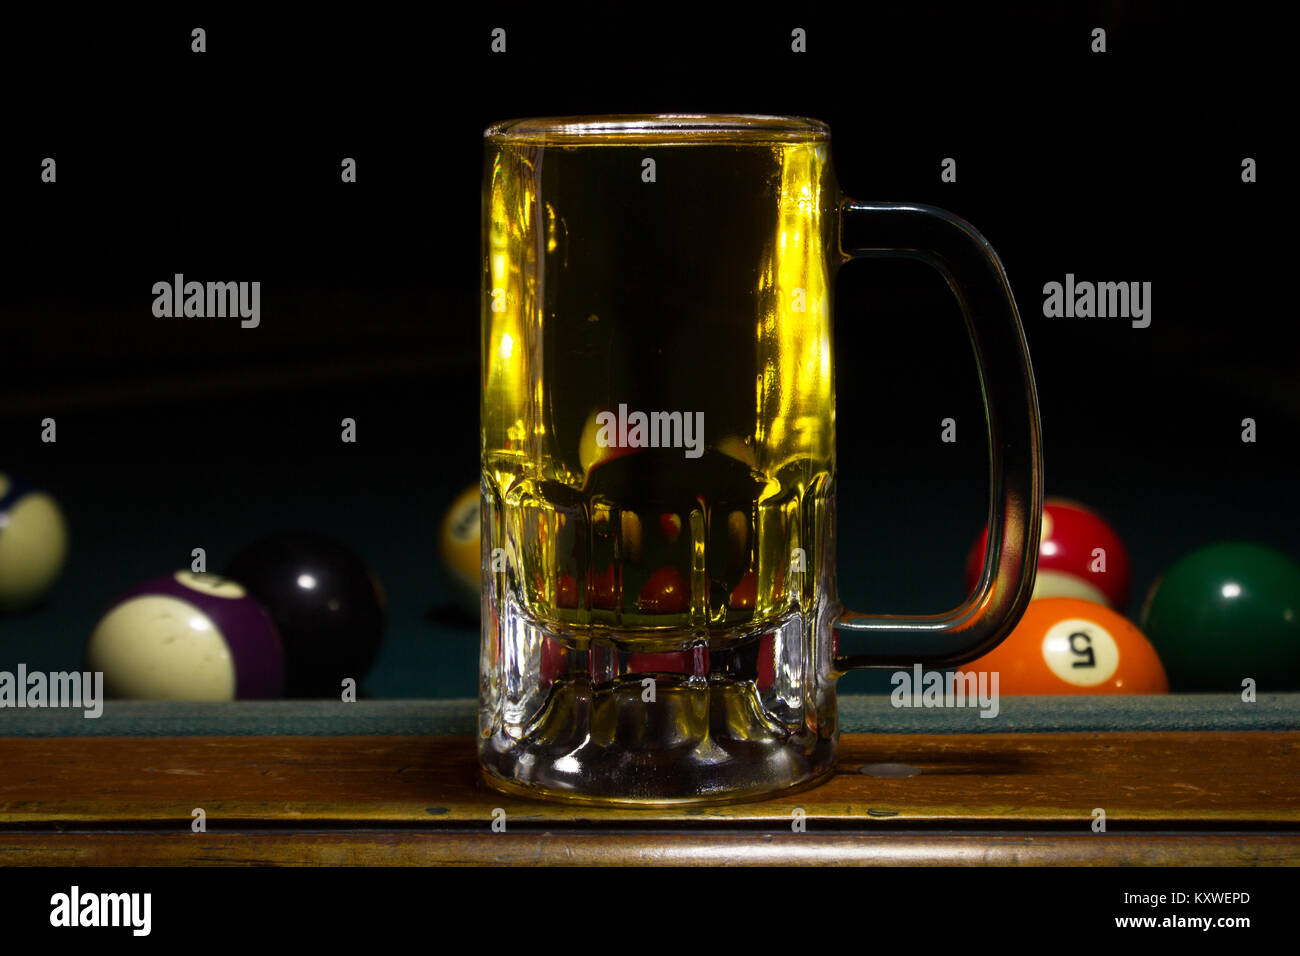 a cold mug with beer on a billard table with black background - Stock Image